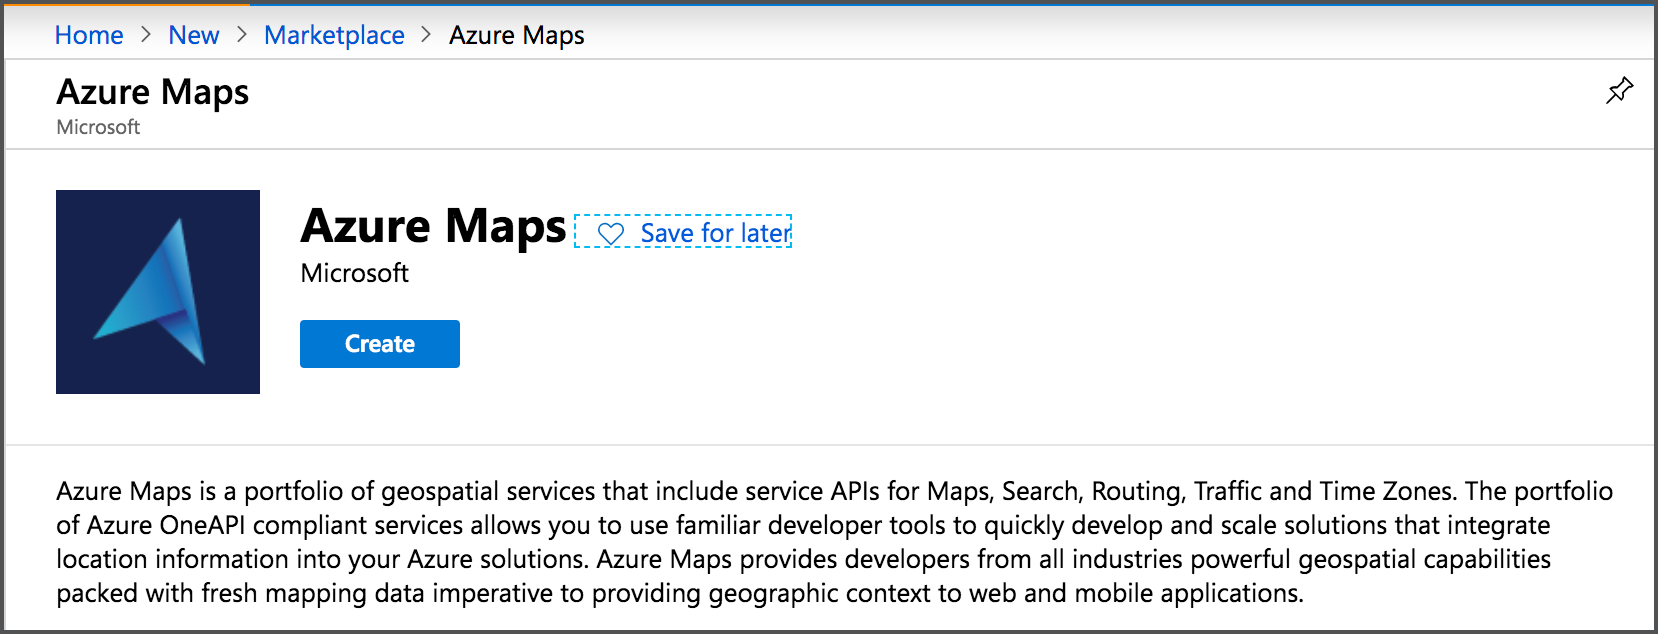 A new Azure Maps resource in the Azure portal